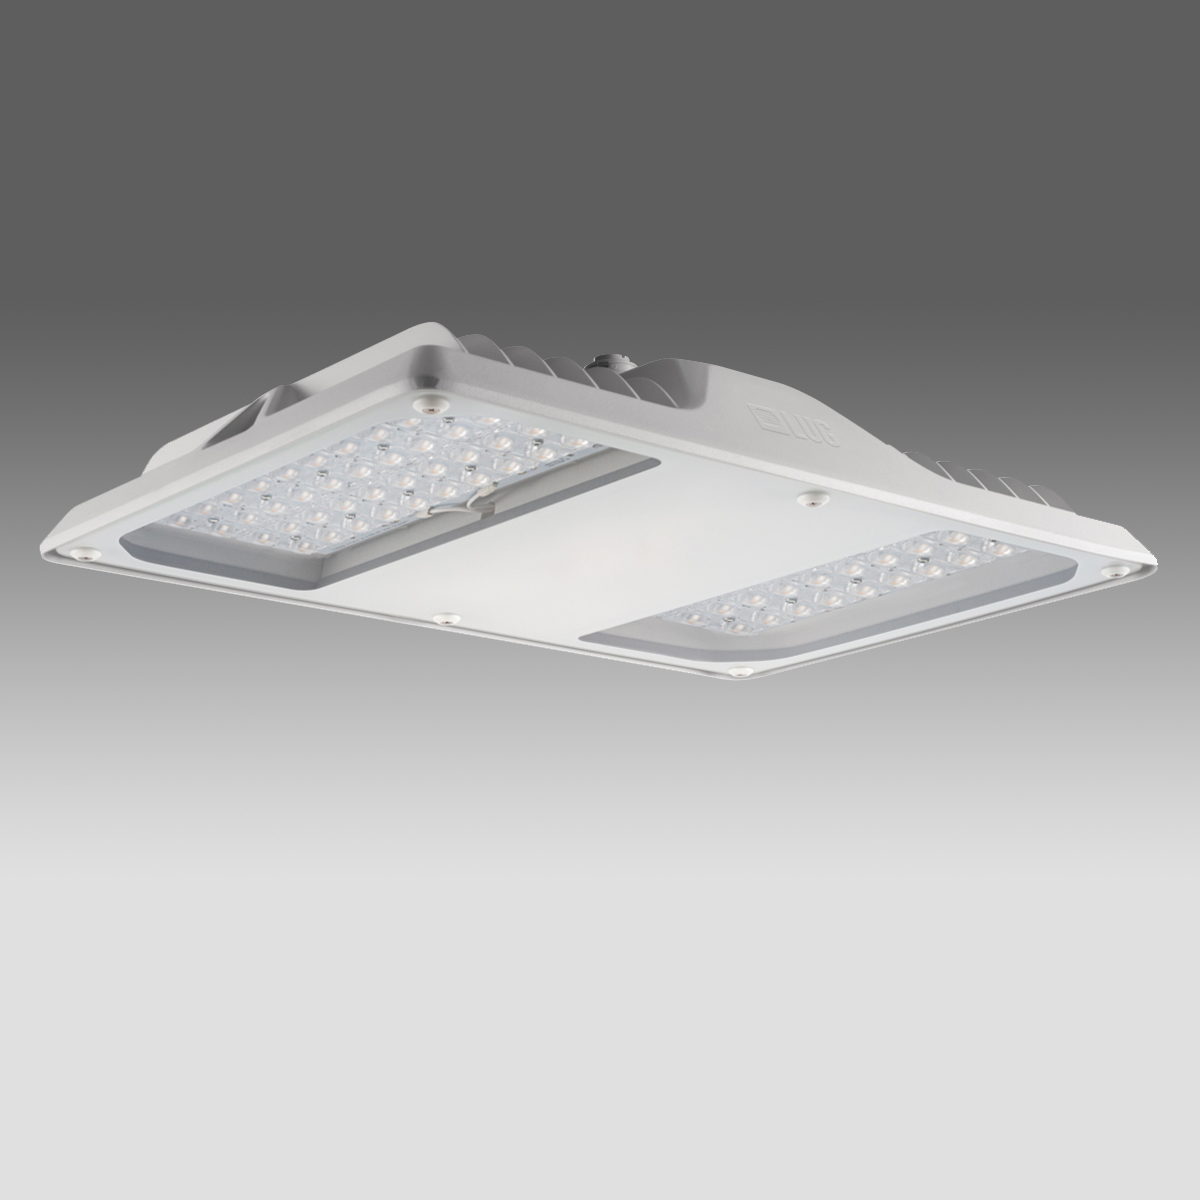 1 Stk Arktur Square PLUS LED 219W 28600lm/840 EVG IP66 100° grau LIG4255115